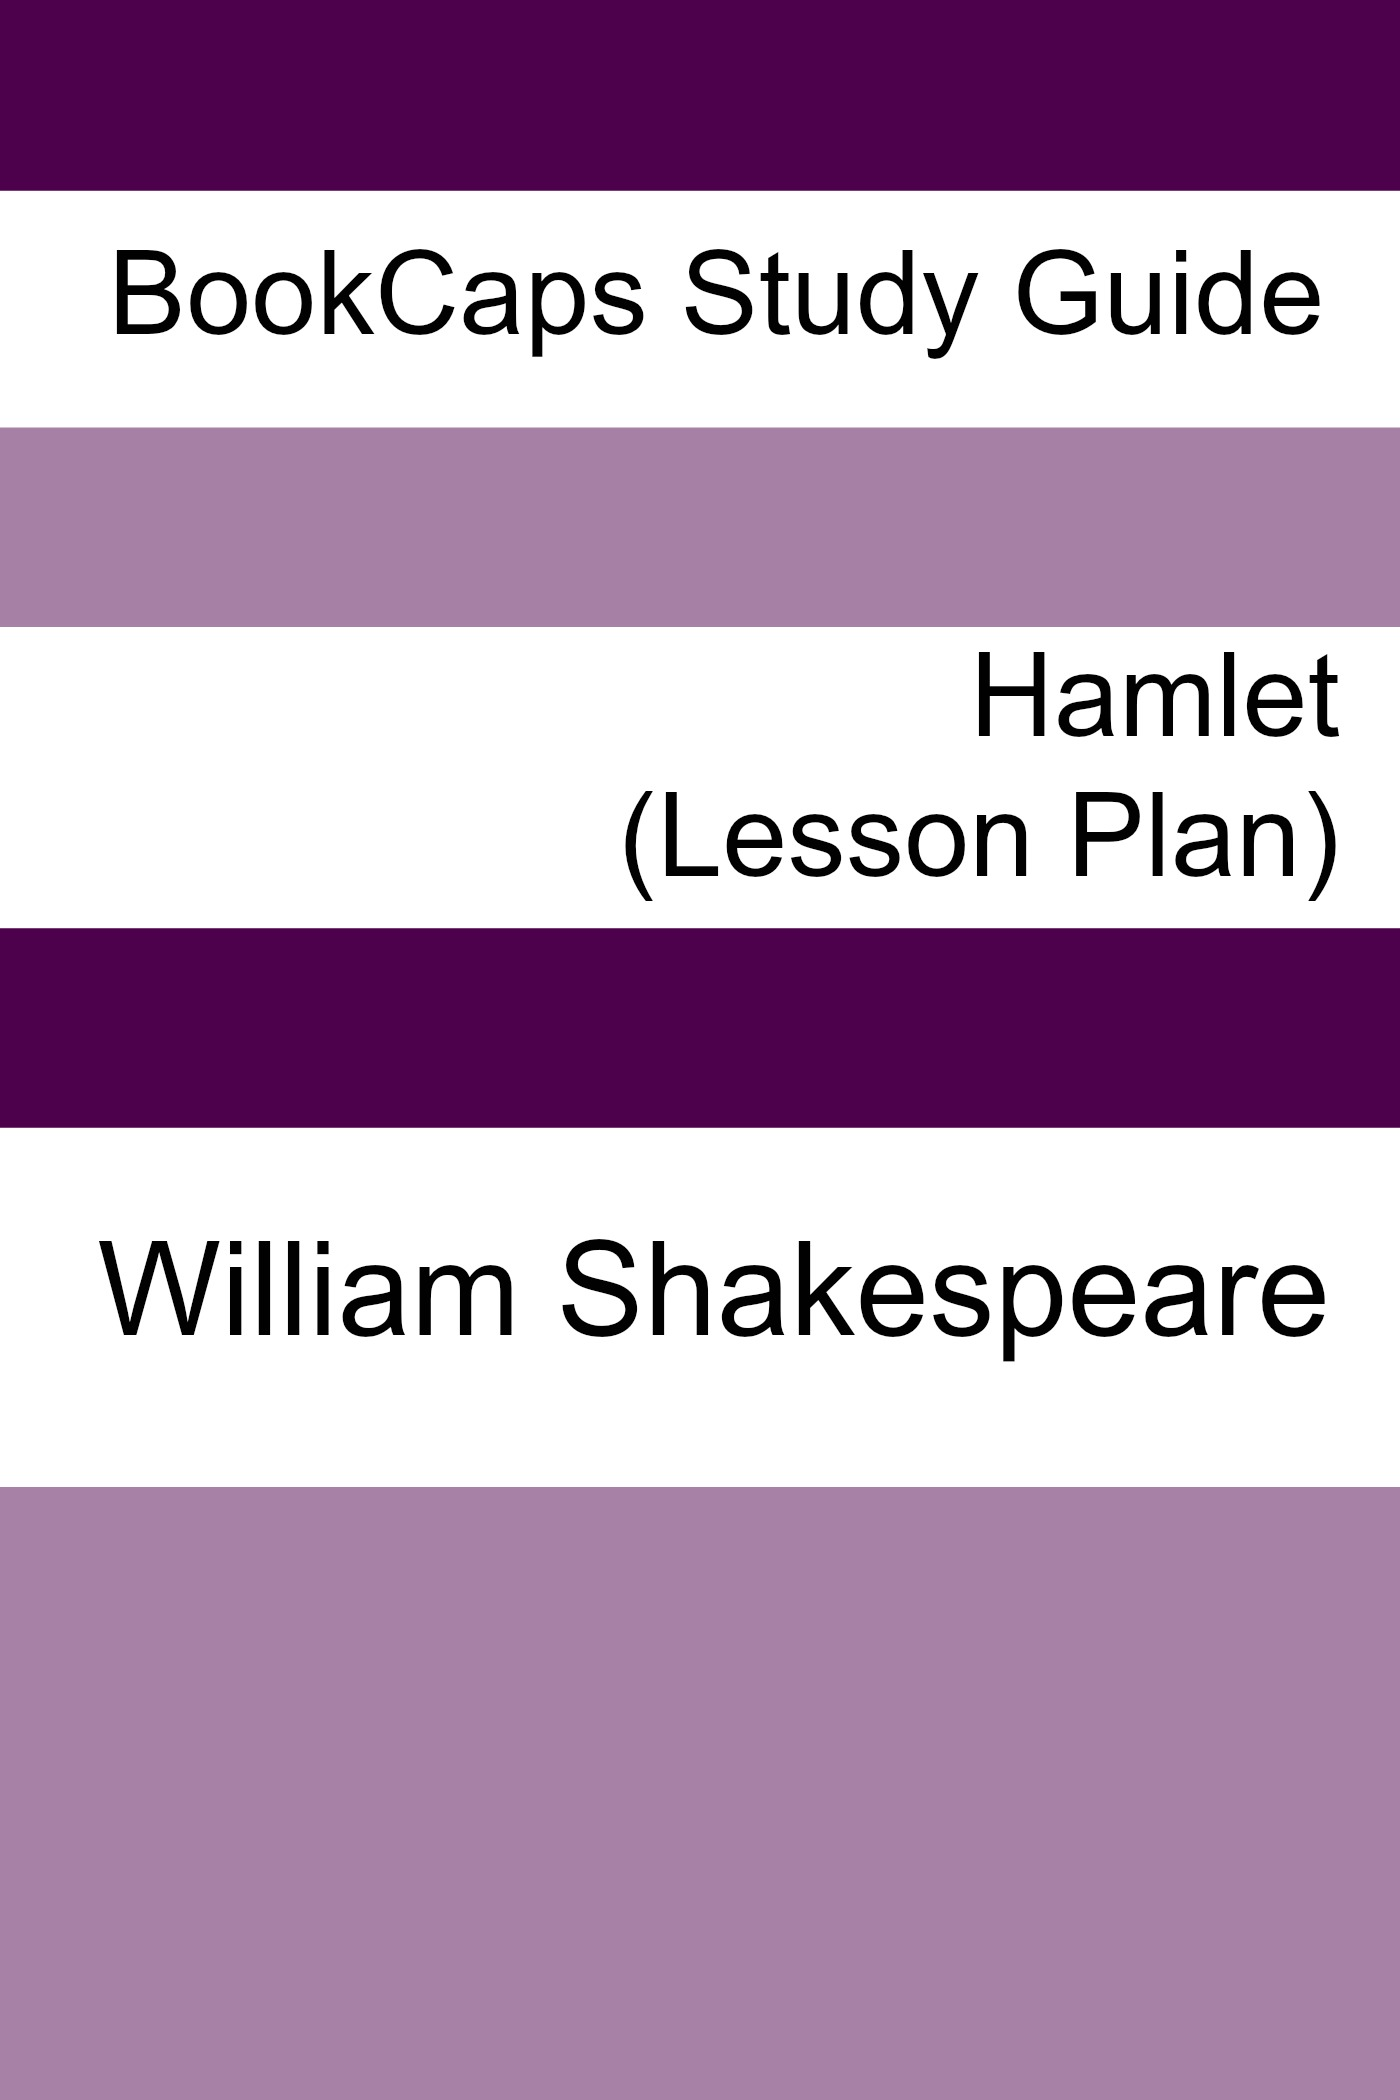 an analysis of how to plan a perfect revenge in hamlet by william shakespeare Hamlet lesson plans and teaching ideas hamlet by william shakespeare how might macbeth and hamlet through textual analysis and.